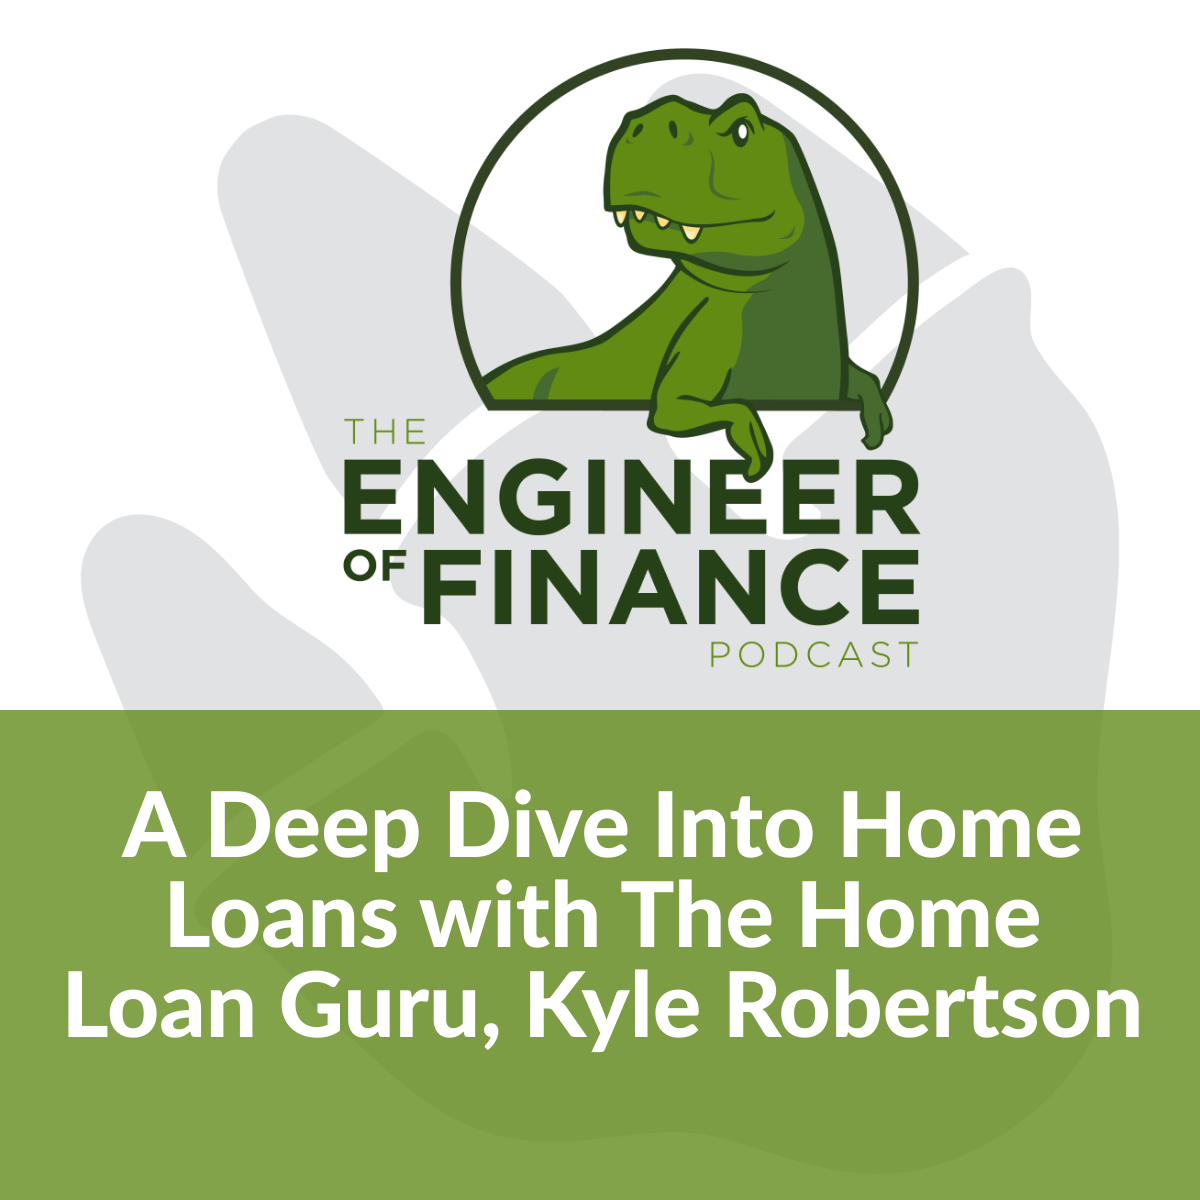 A Deep Dive Into Home Loans with The Home Loan Guru, Kyle Robertson – Episode 143